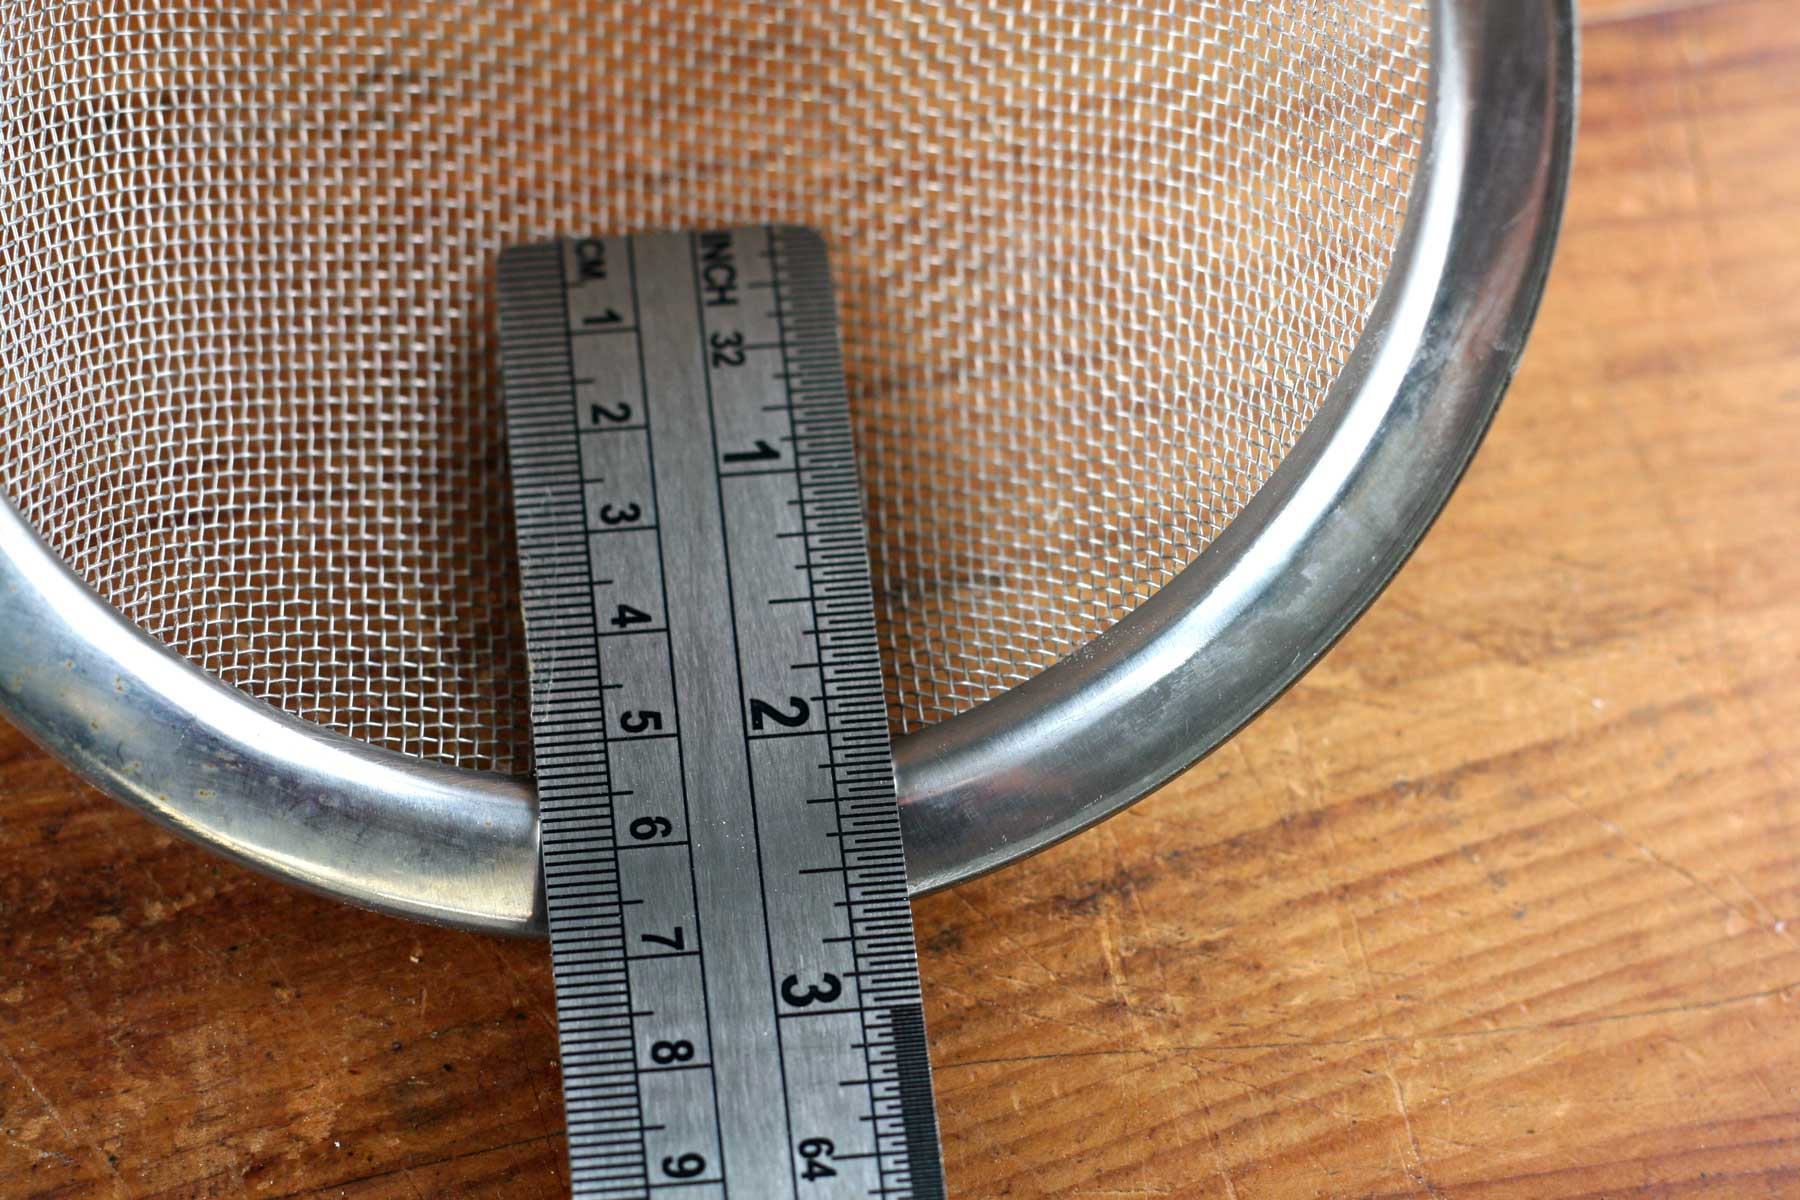 Sieve with ruler